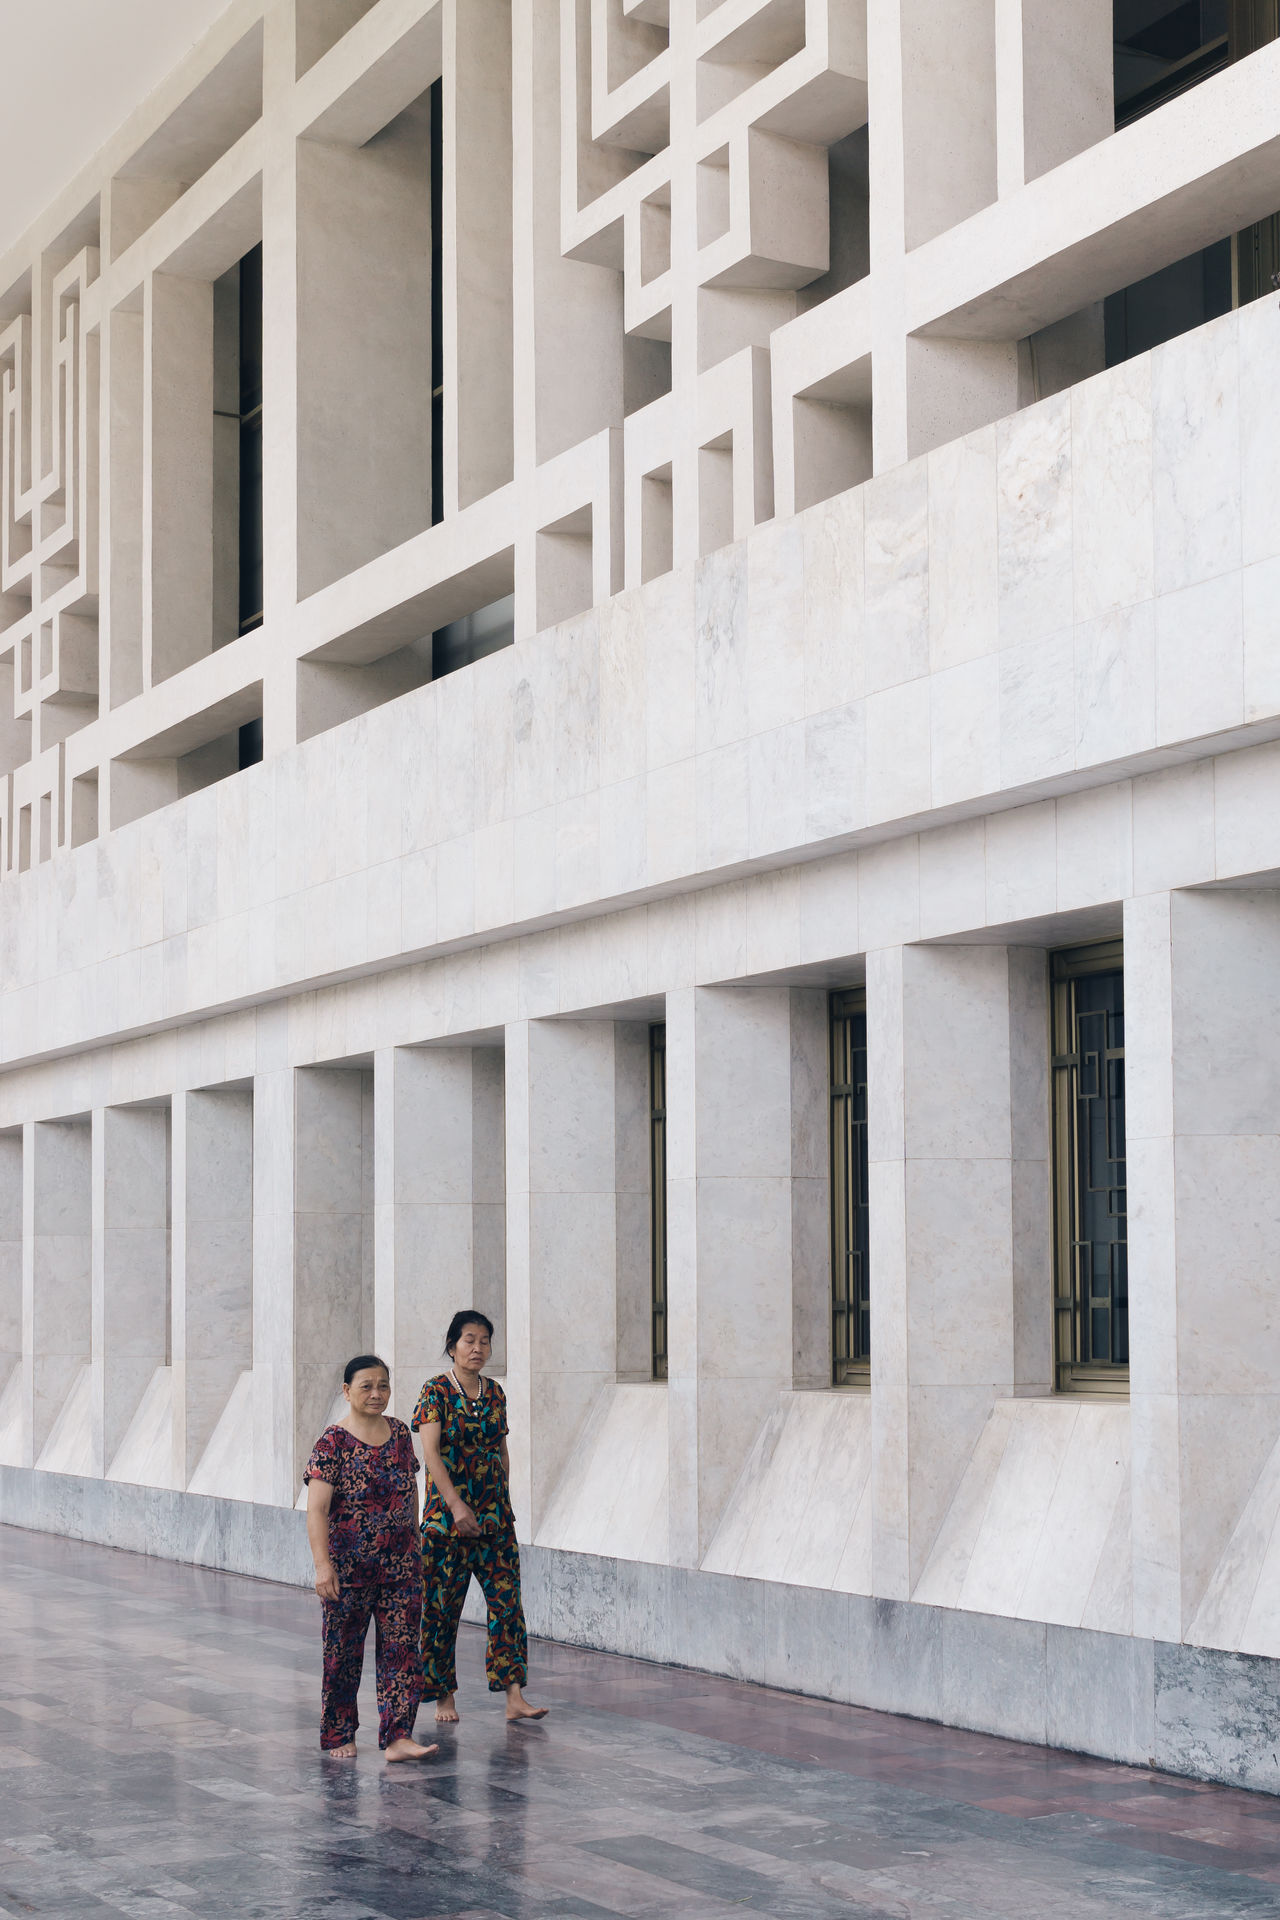 Architectural Detail Architecture Architecture Architecture_collection Building Exterior Built Structure Day Hanoi Outdoors People Real People Togetherness Travel Travel Destinations Travel Photography Traveling Vietnam Walking Women The Street Photographer - 2017 EyeEm Awards The Architect - 2017 EyeEm Awards